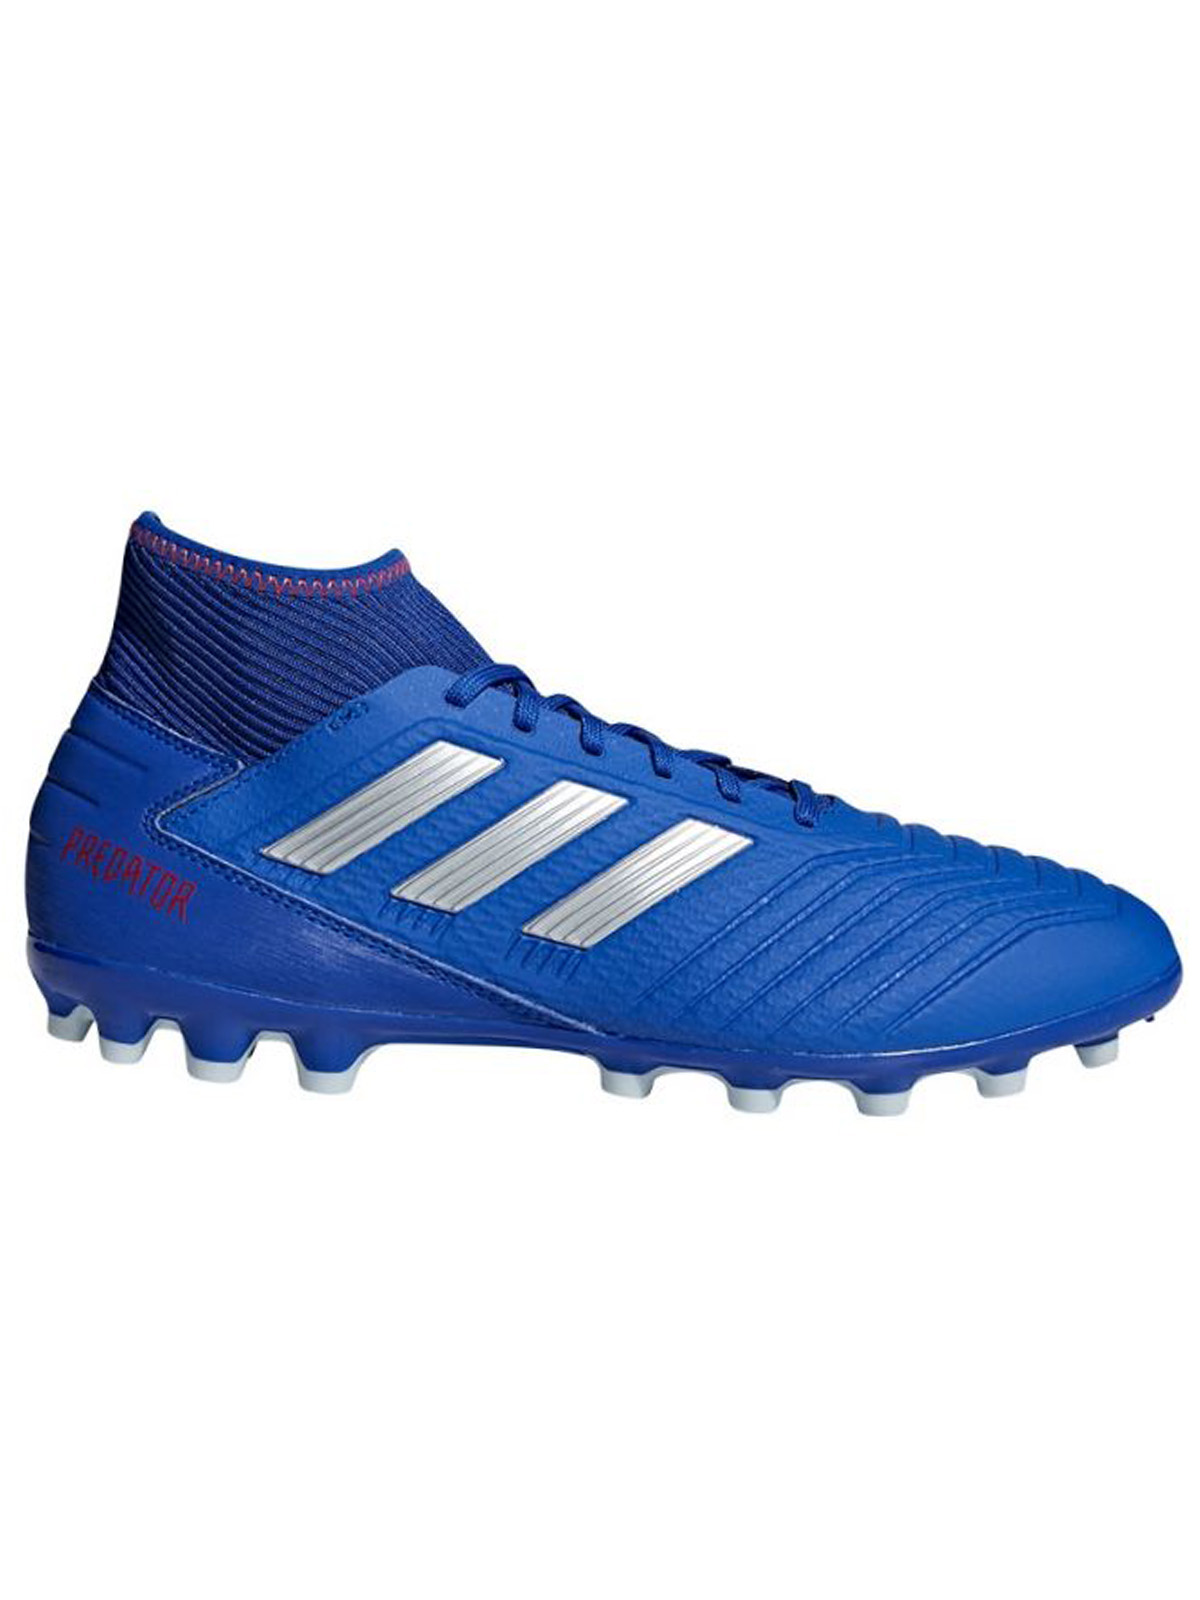 Adidas Predator Football Soccer Shoes Blue 19.3 Without Laces Turf Soccer Turf | eBay